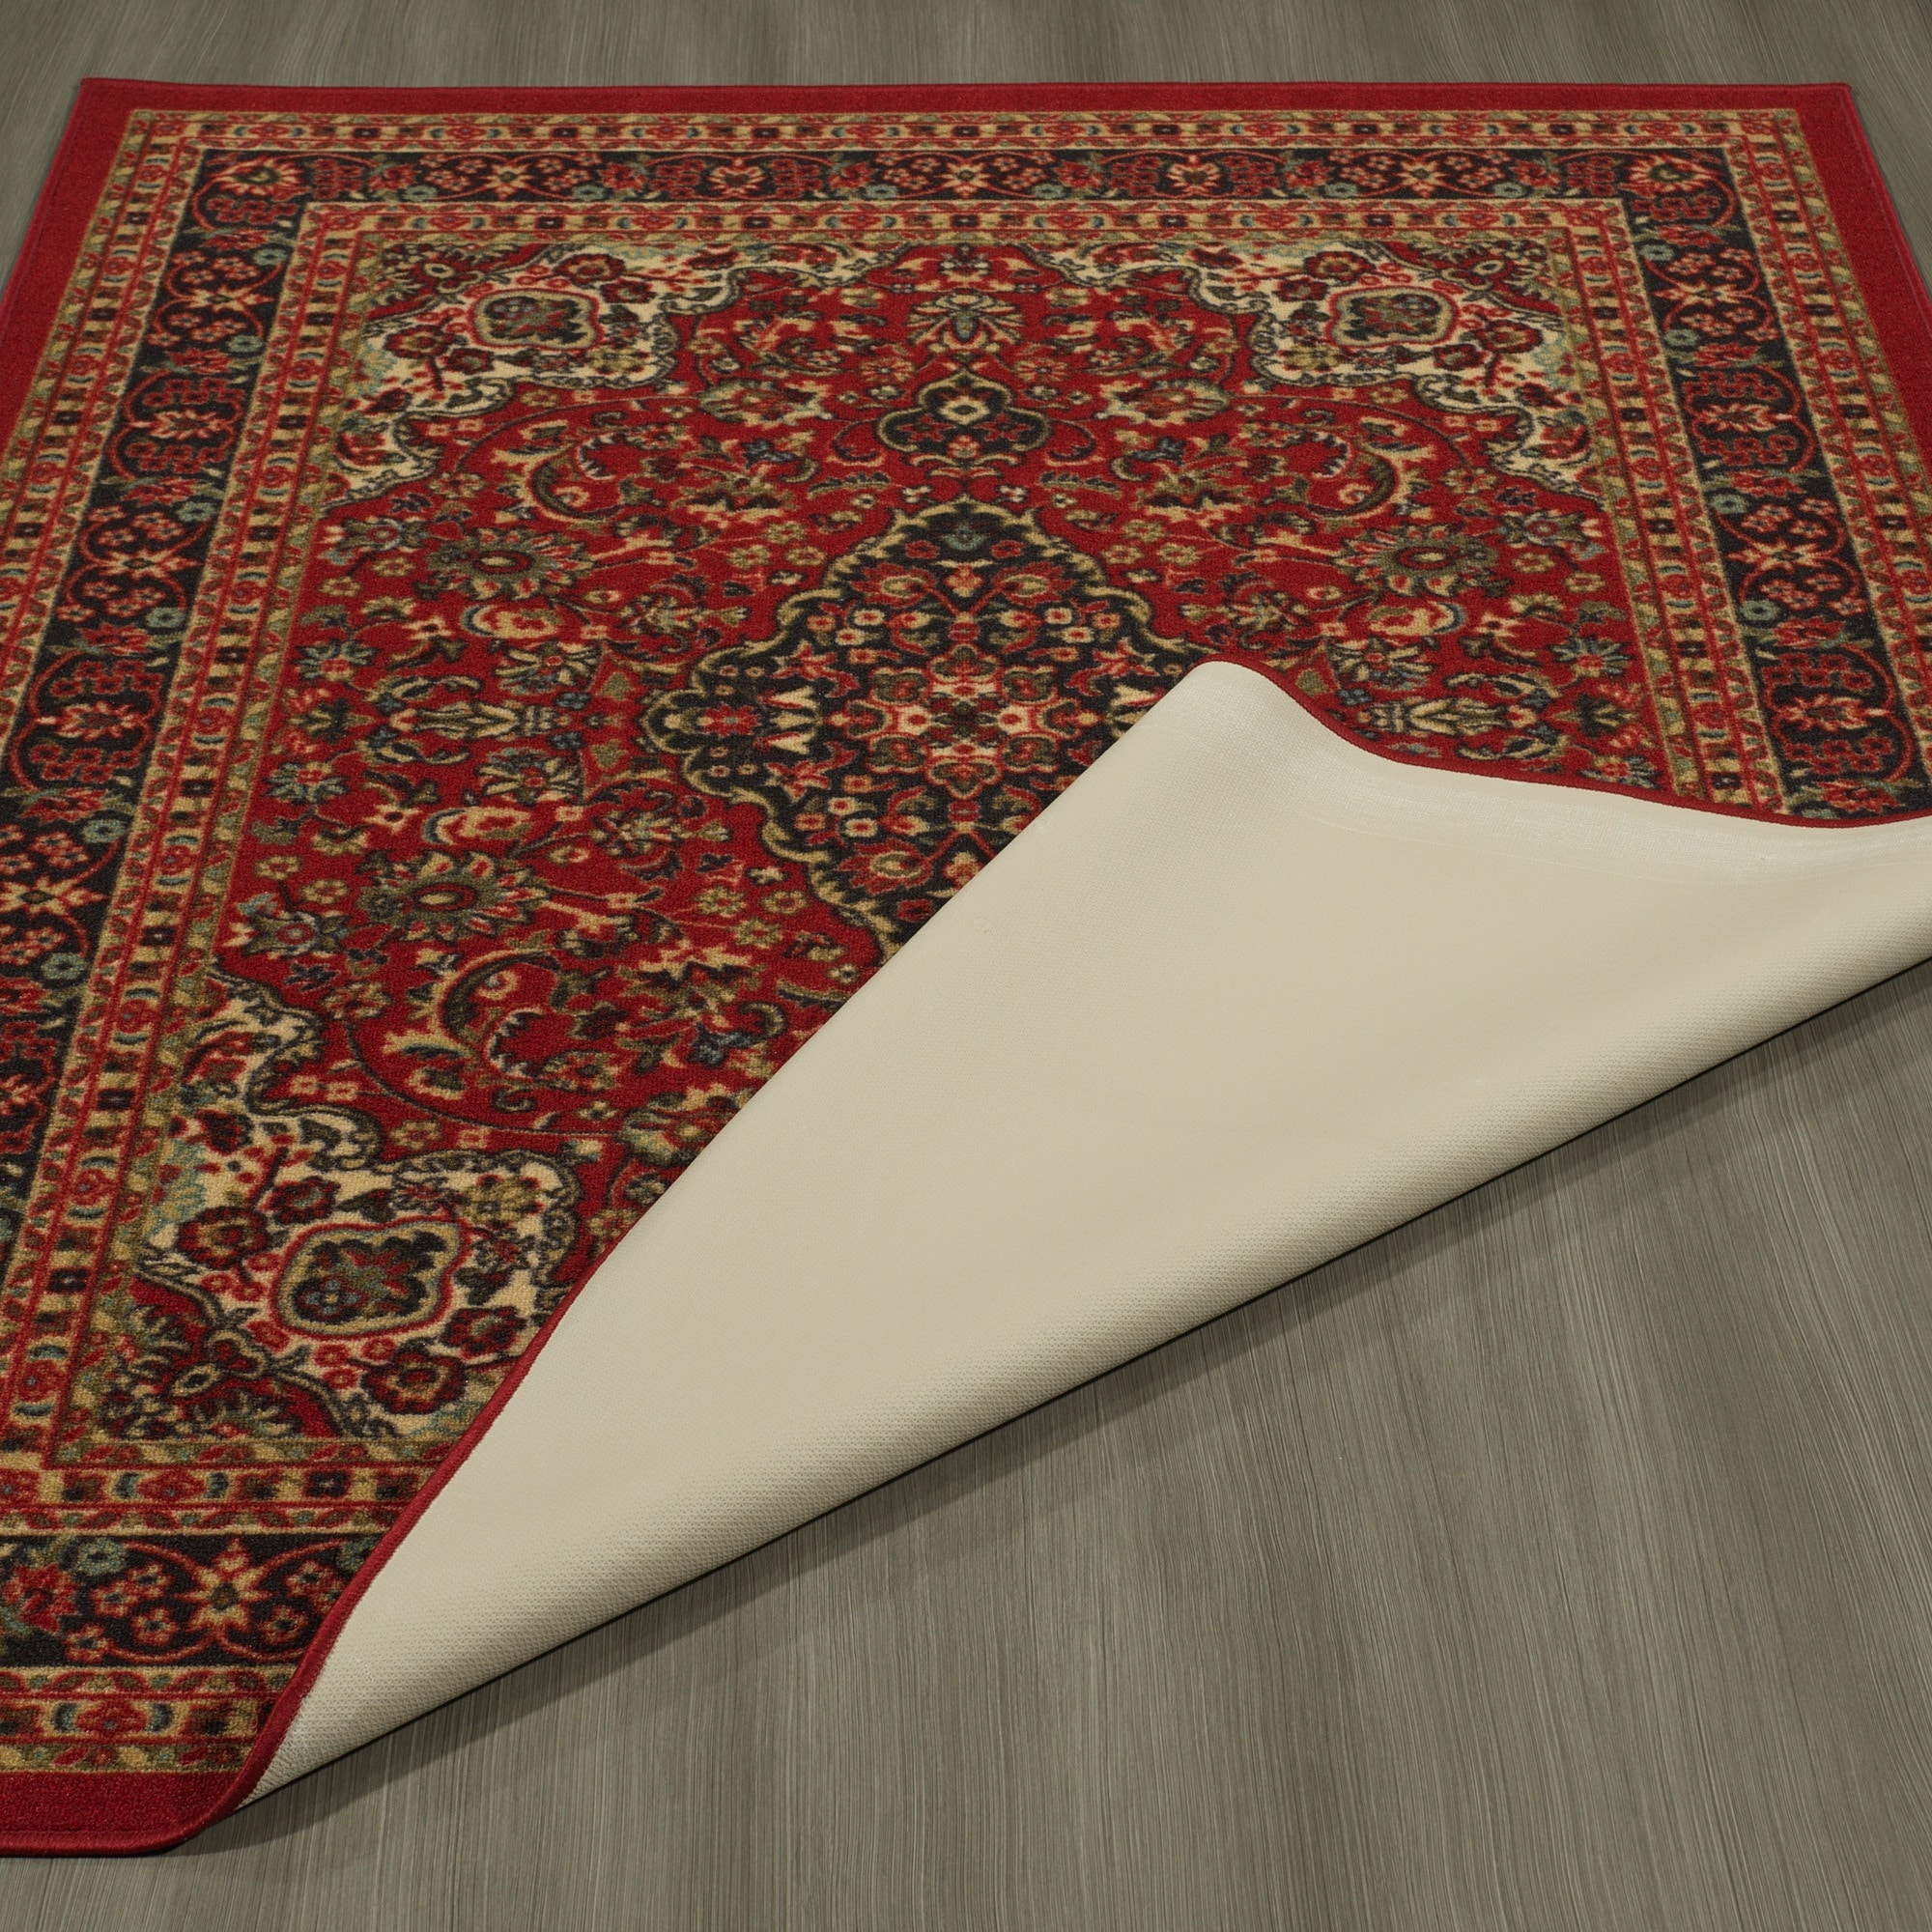 Anti Slip Backing For Rugs Area Rug Ideas